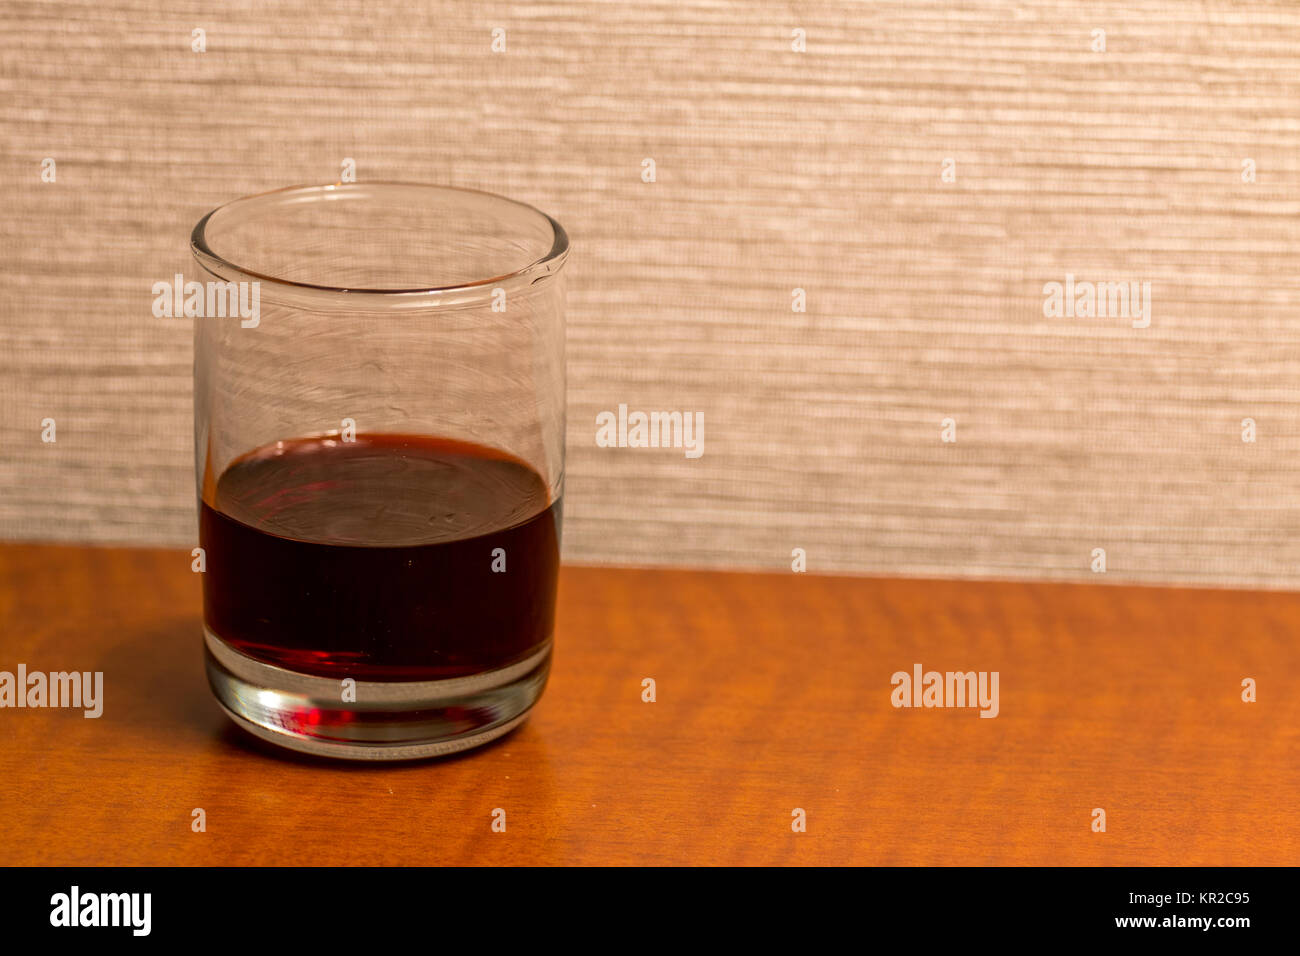 Glass of Red Liquid on Wood Table - Stock Image